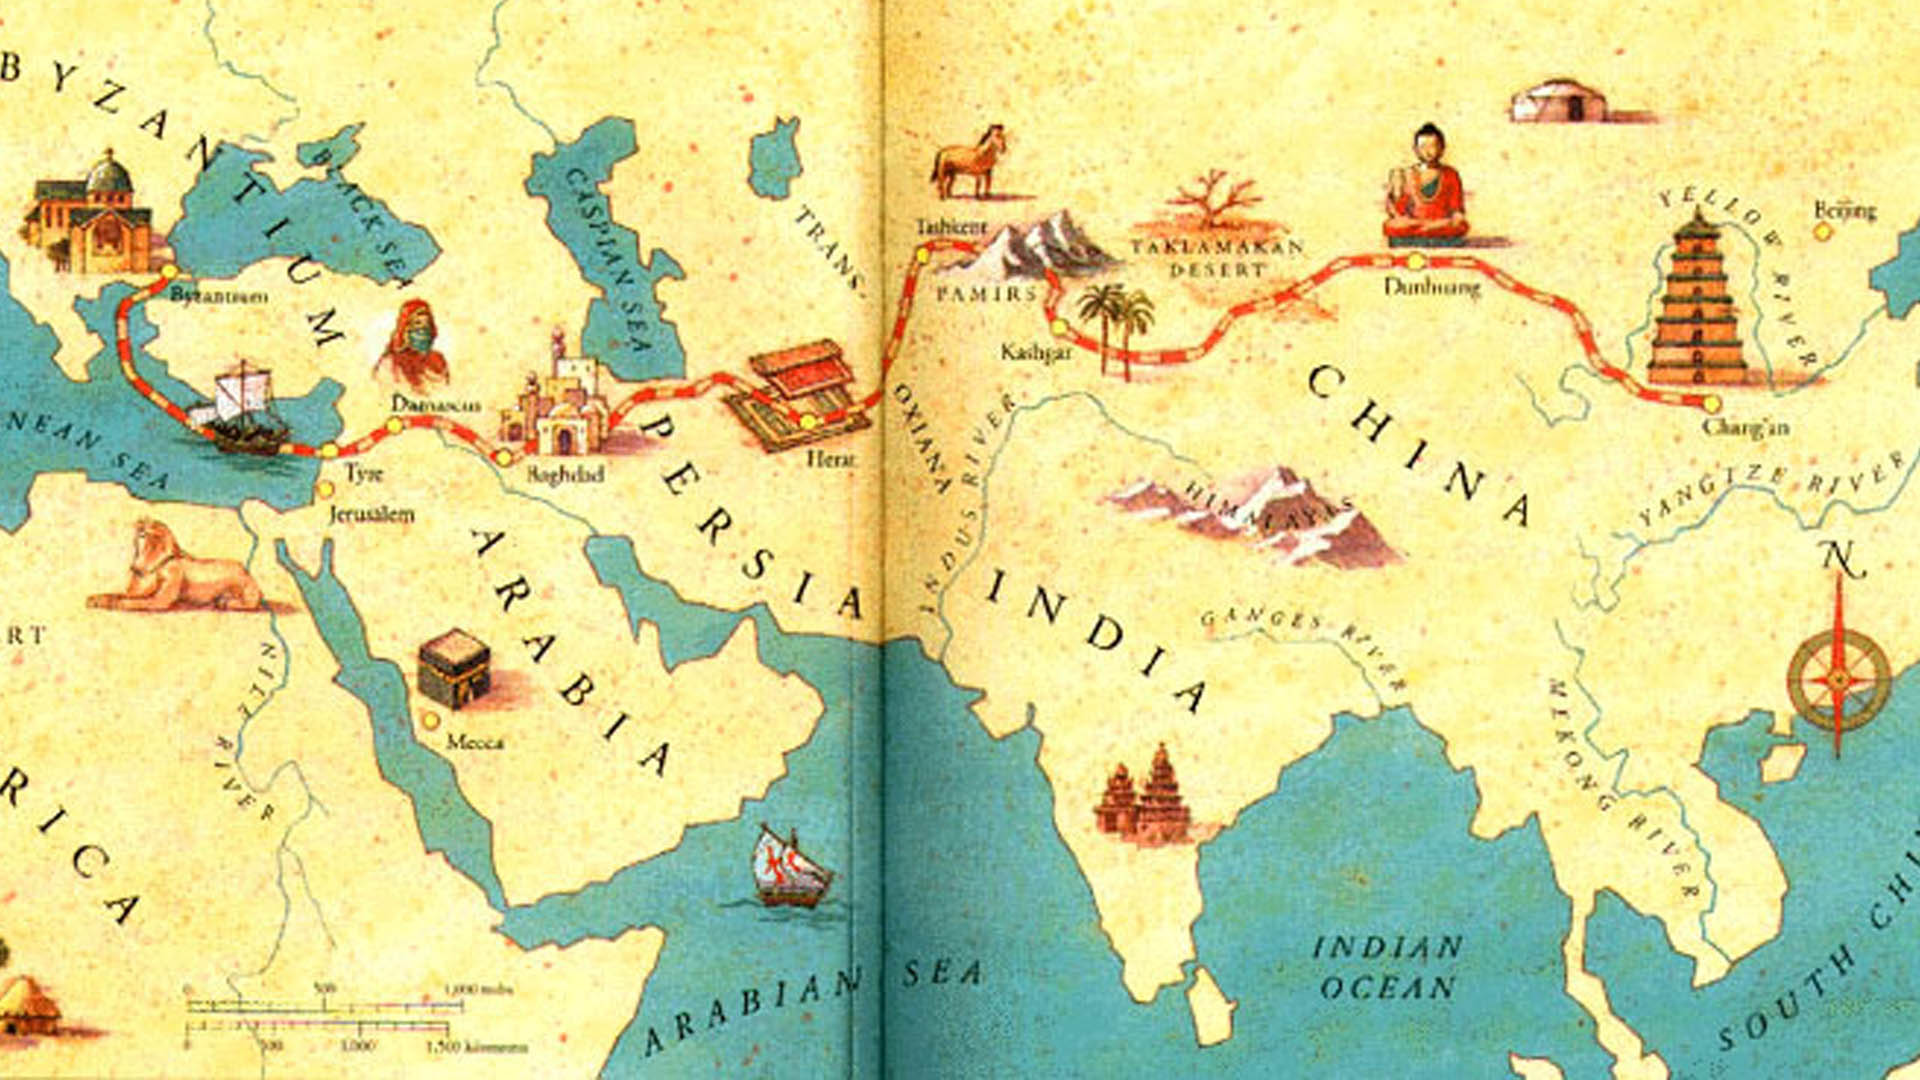 essays on the silk road The silk road essay the silk road contributed to the economic and cultural development of china to a great extent, due to the attraction of foreign trade.